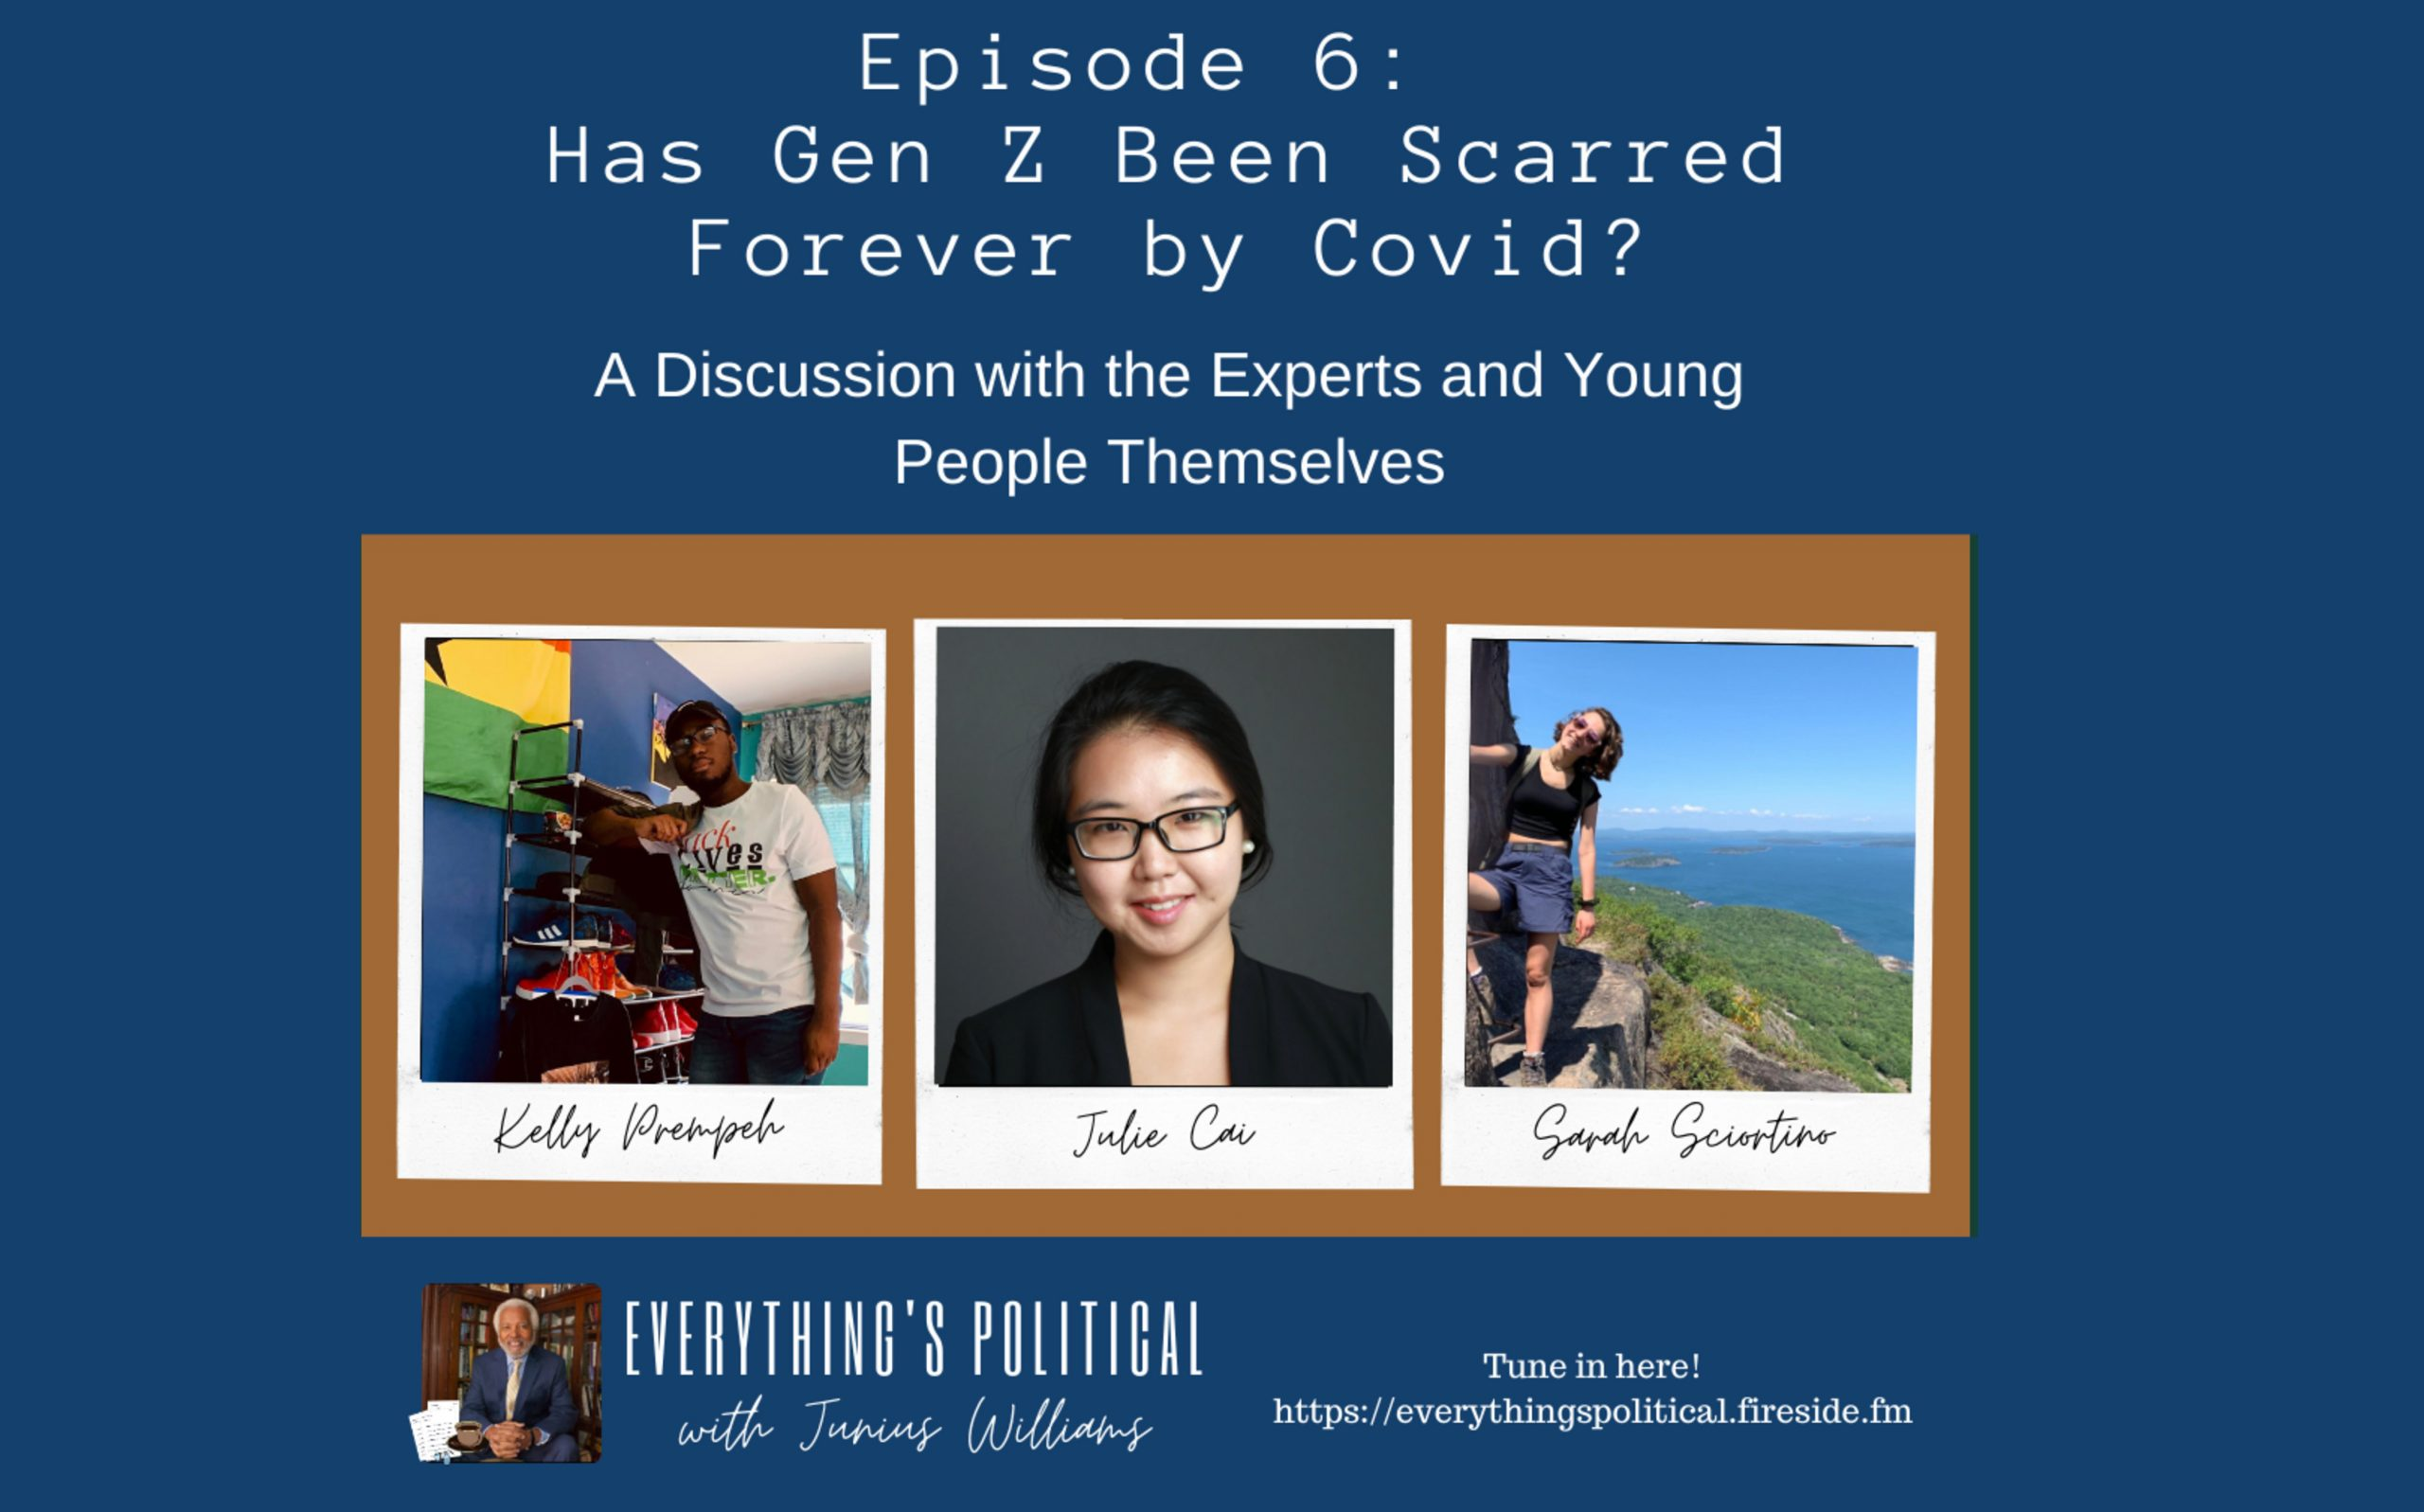 EPISODE 6: HAS GEN Z BEEN SCARRED FOREVER BY COVID? A DISCUSSION WITH THE EXPERTS AND YOUNG PEOPLE THEMSELVES